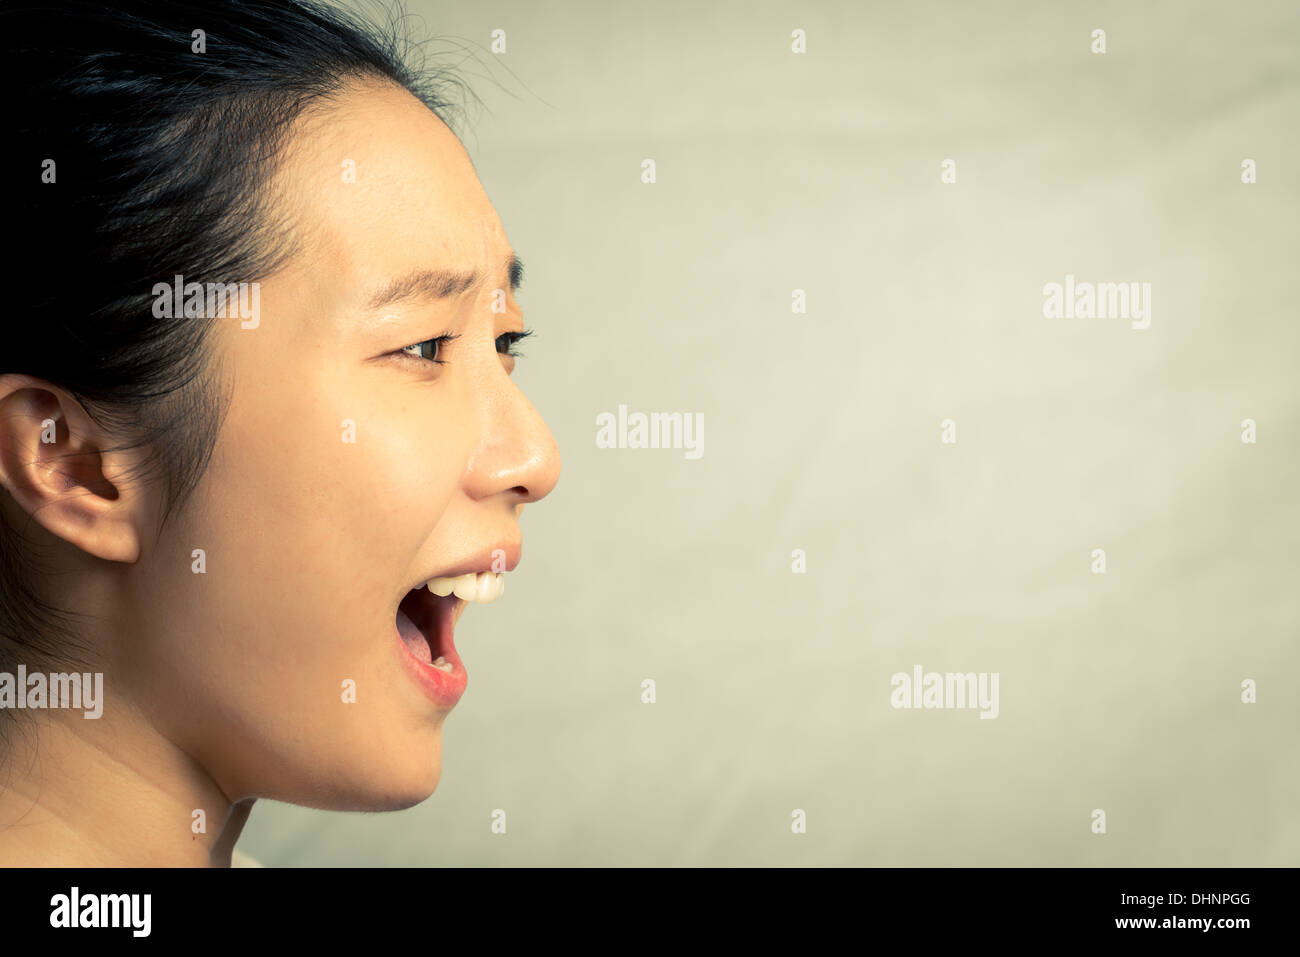 Young woman shouting, with fashion tone and background - Stock Image